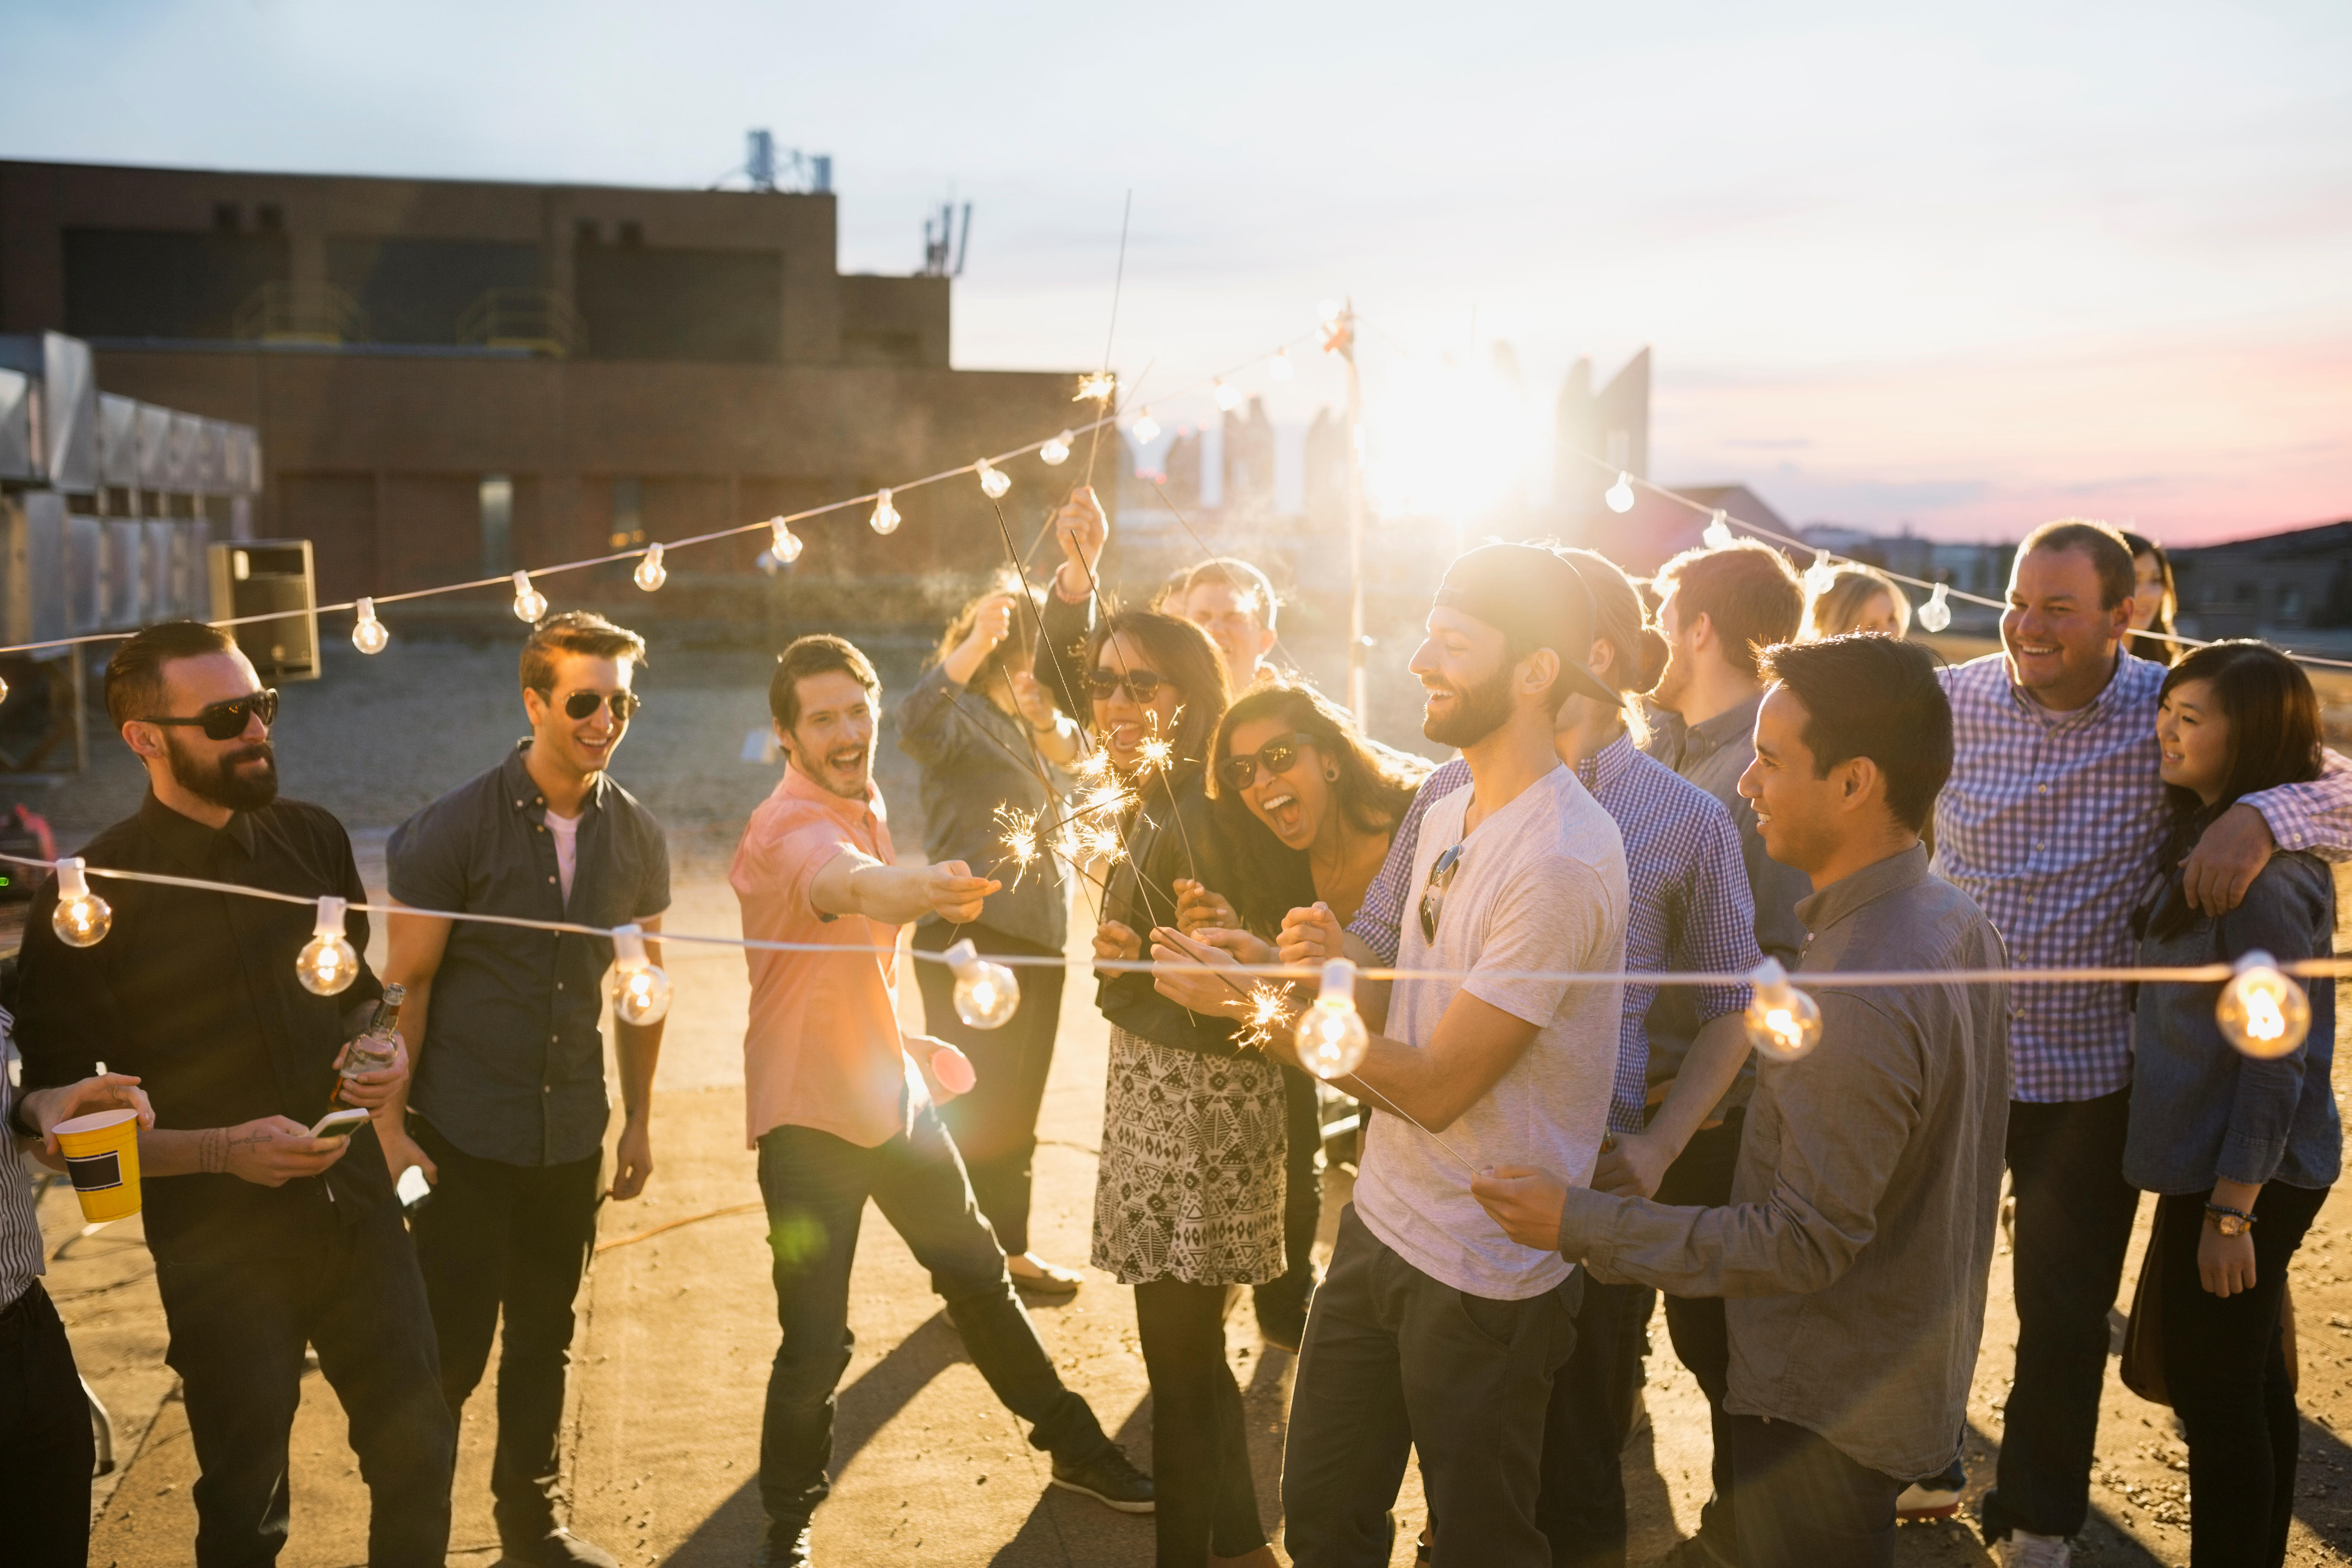 Young adults having a rooftop party at sunset